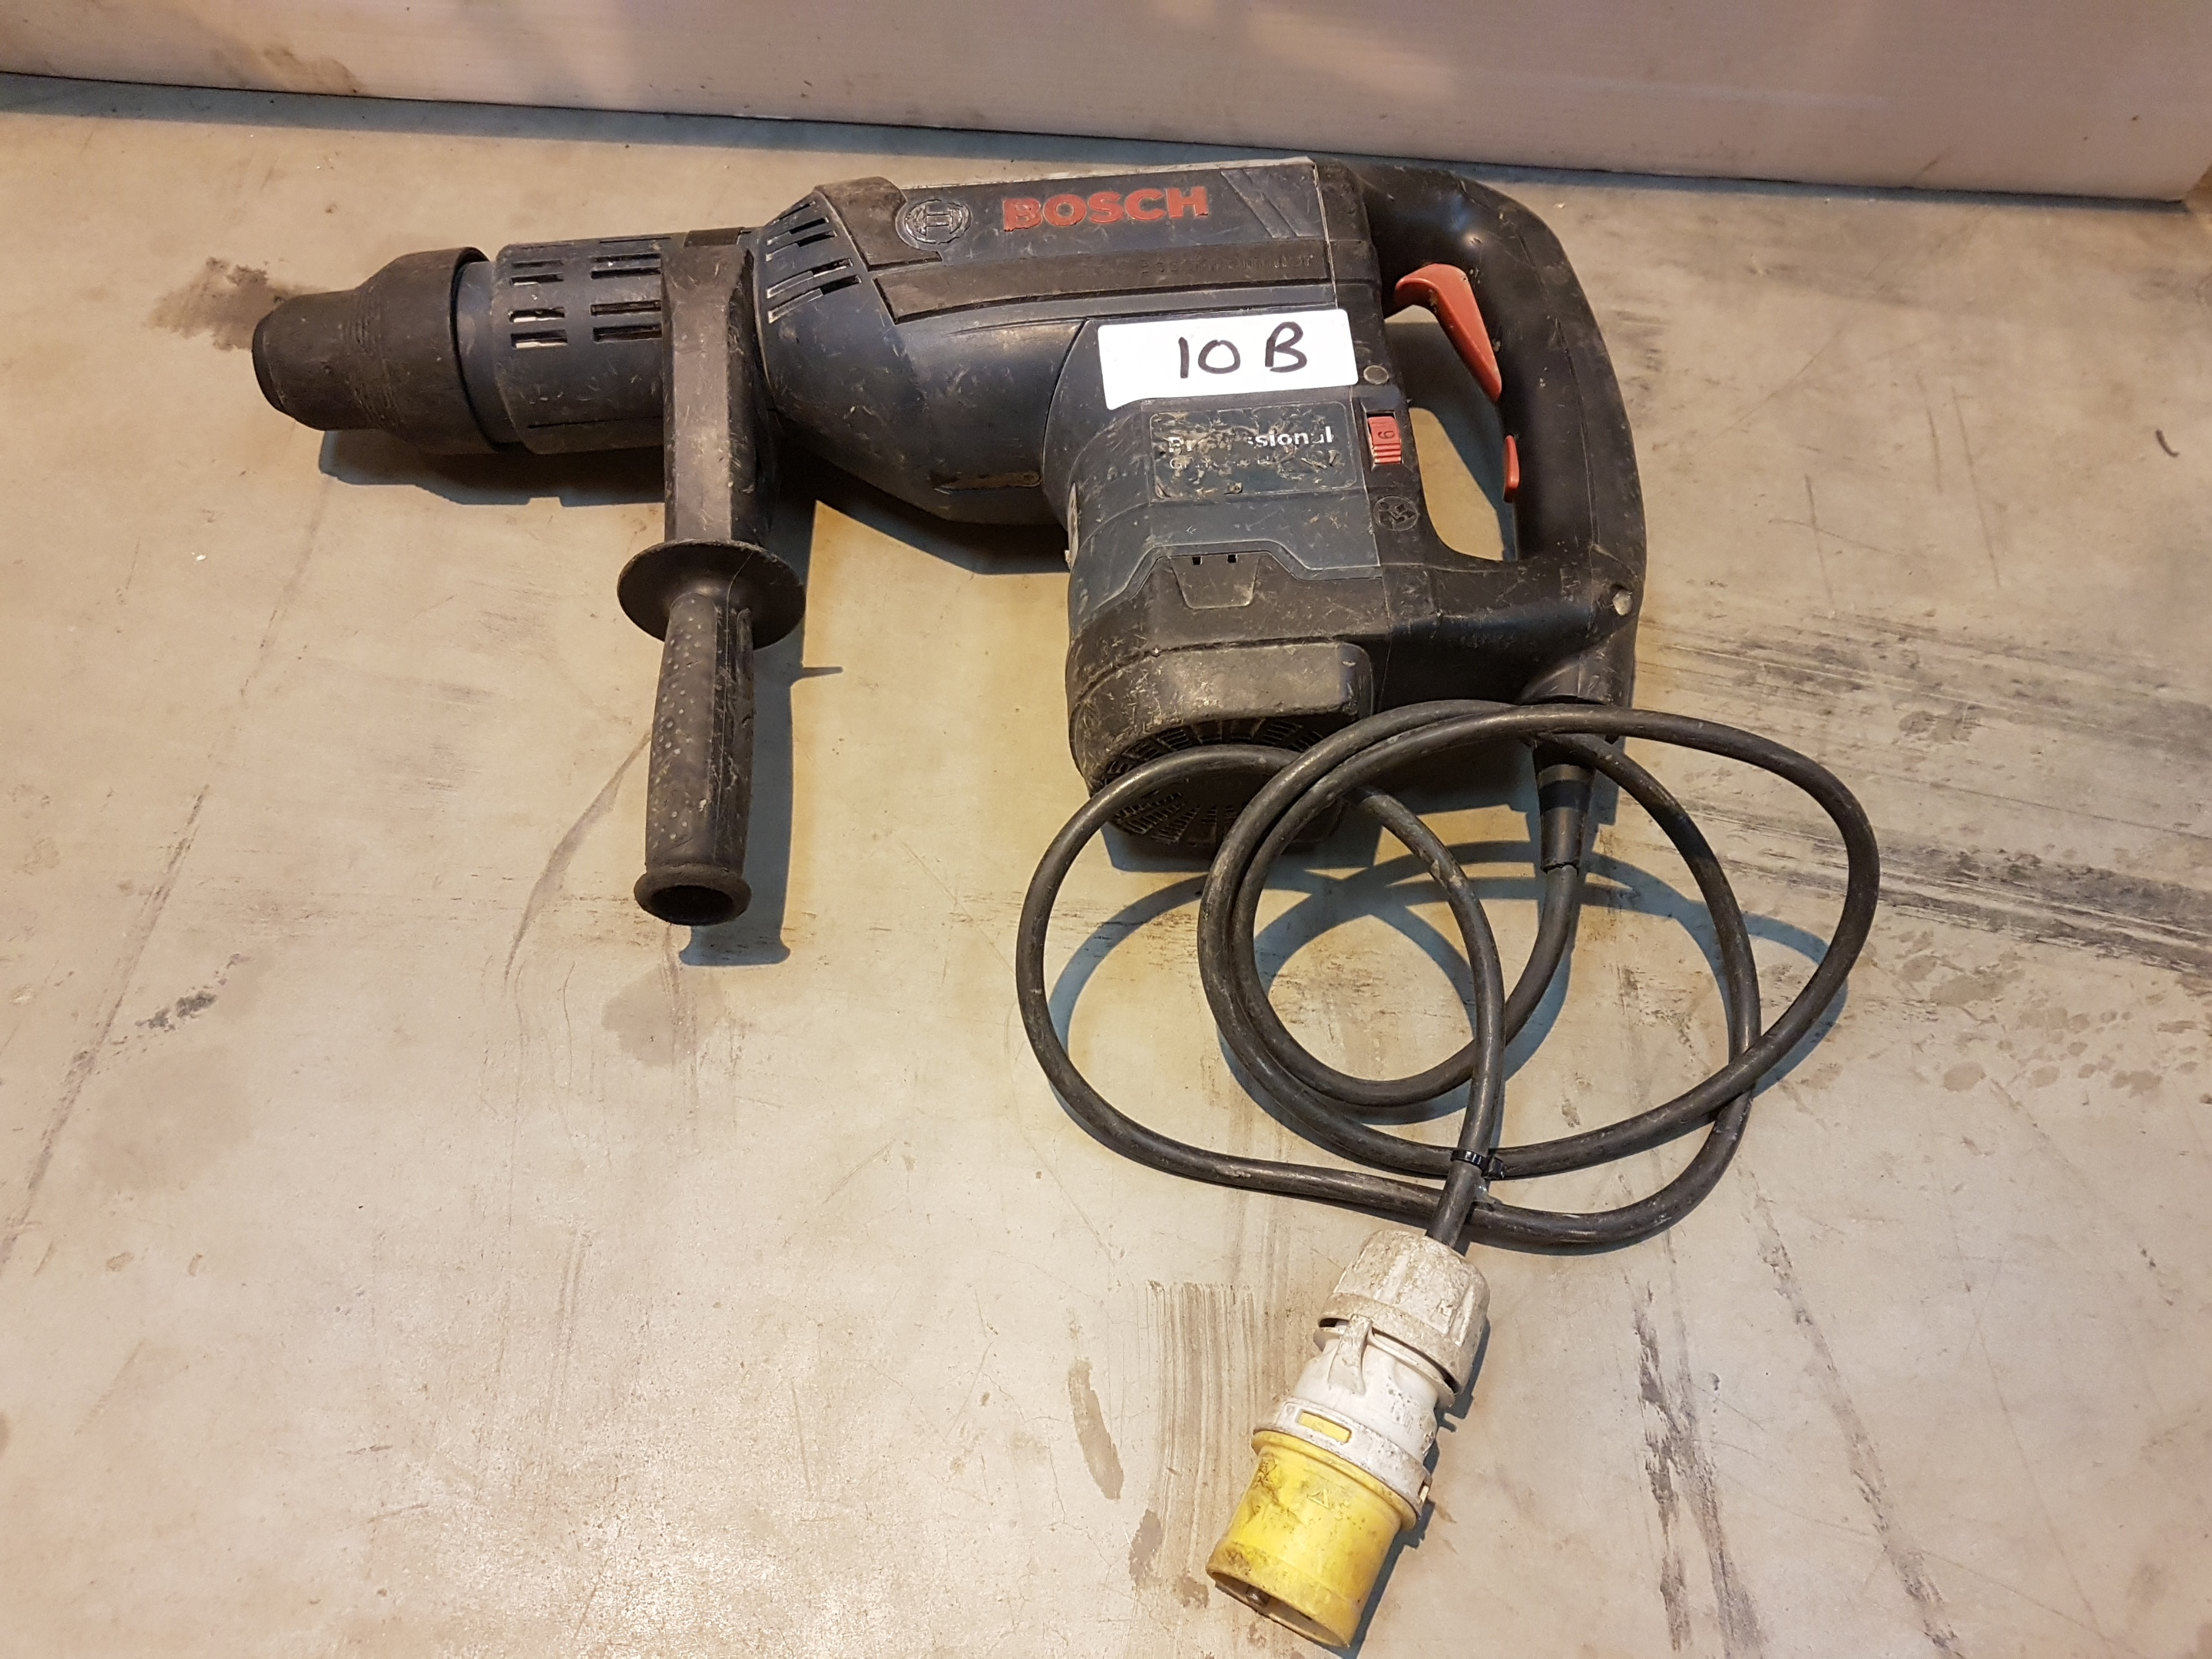 Lot 10 - Bosch 110v SDS / Hammer Drill GBH Large H42478, working